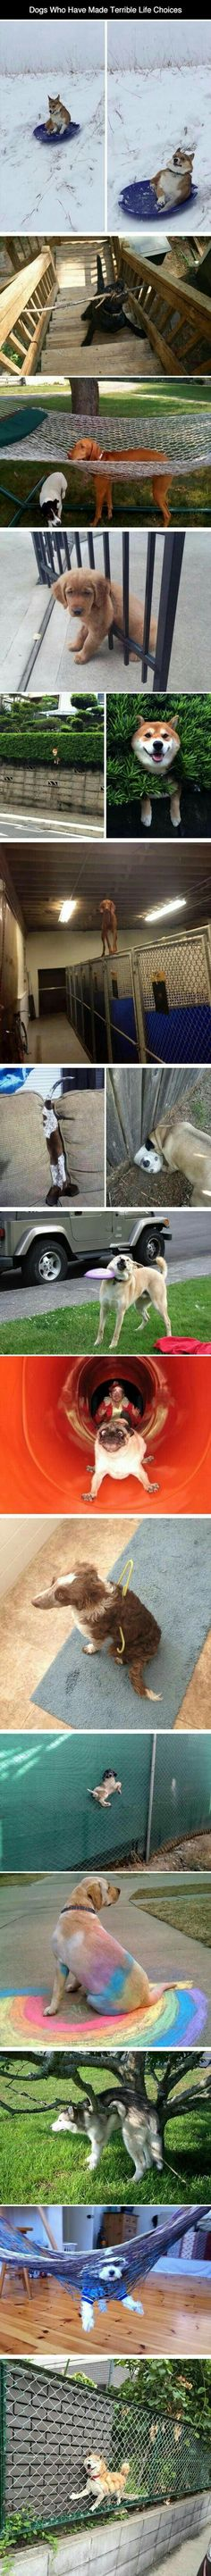 Dogs who made terrible life choices.